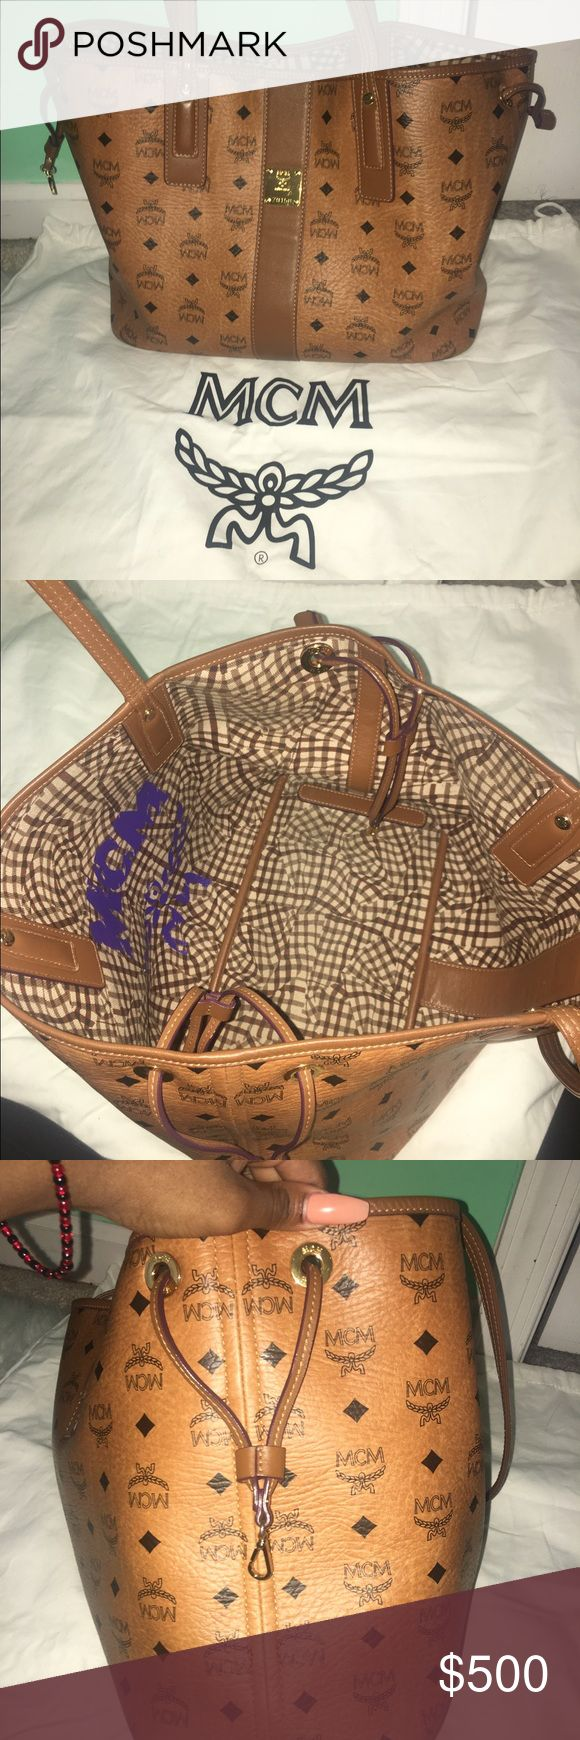 MCM Handbag This MCM tote is soooo beautiful! It's still in great condition! only used a few times. Clutch is included MCM Bags Totes